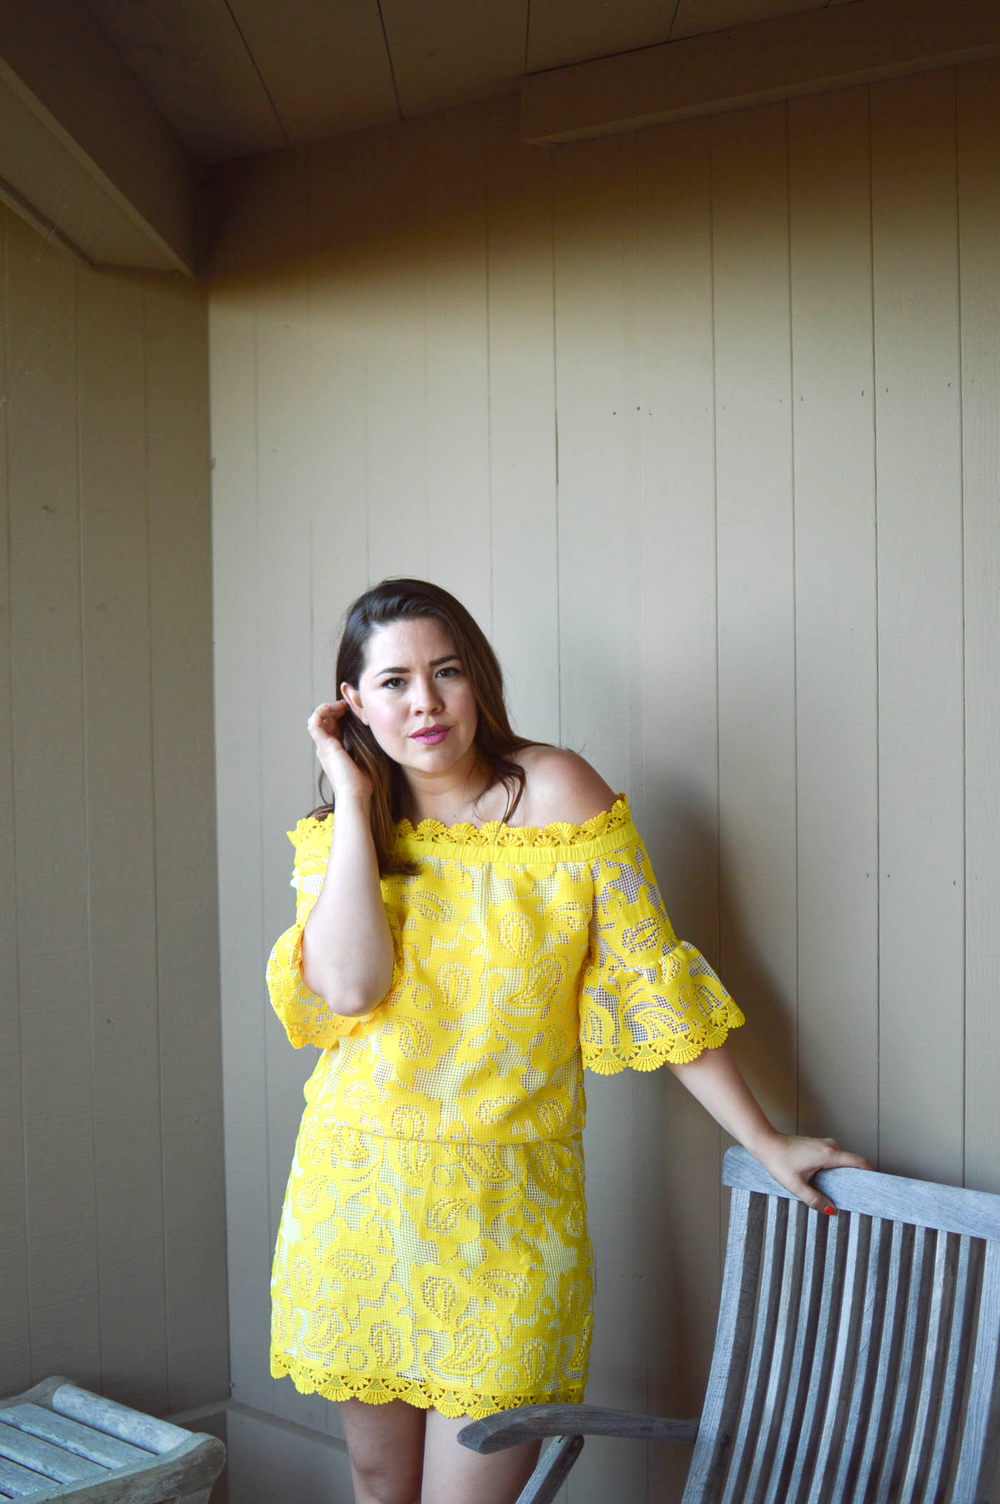 Alexis Yellow Lace Dress via. www.birdieshoots.com